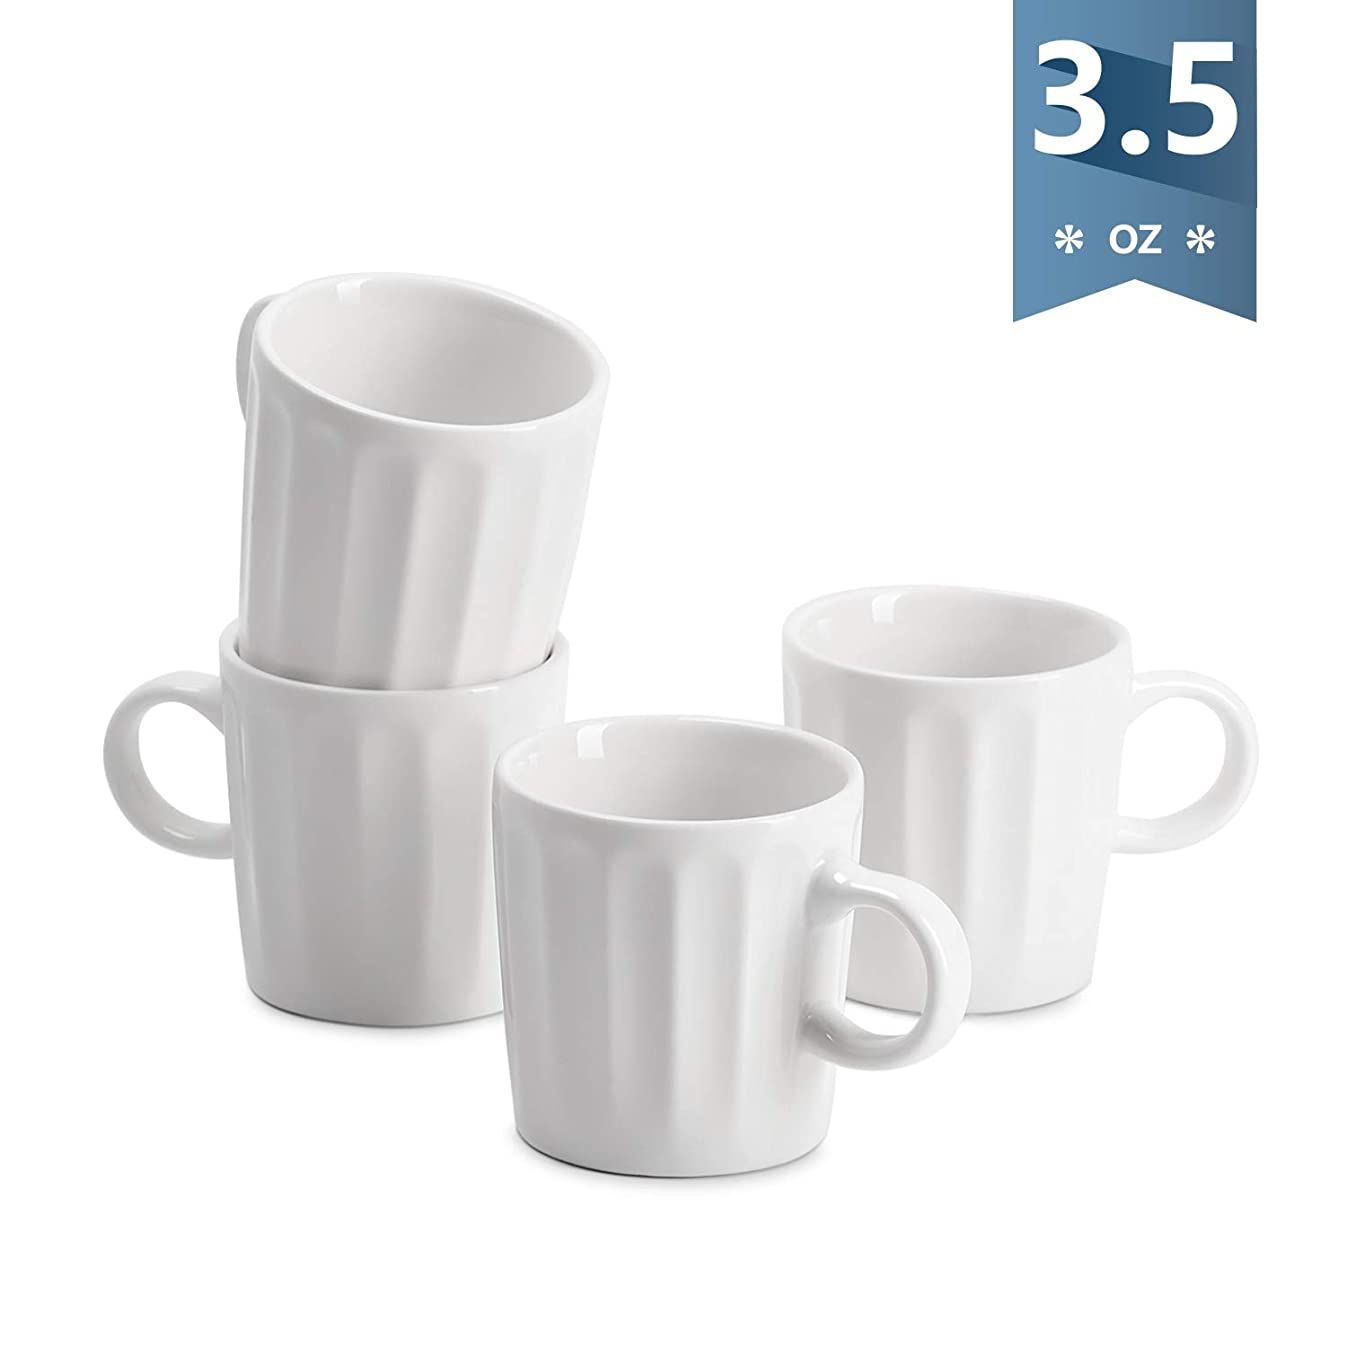 Sweese 4321 Porcelain Espresso Cups - 3.5 Ounce - Set of 4, Fluted cups, White